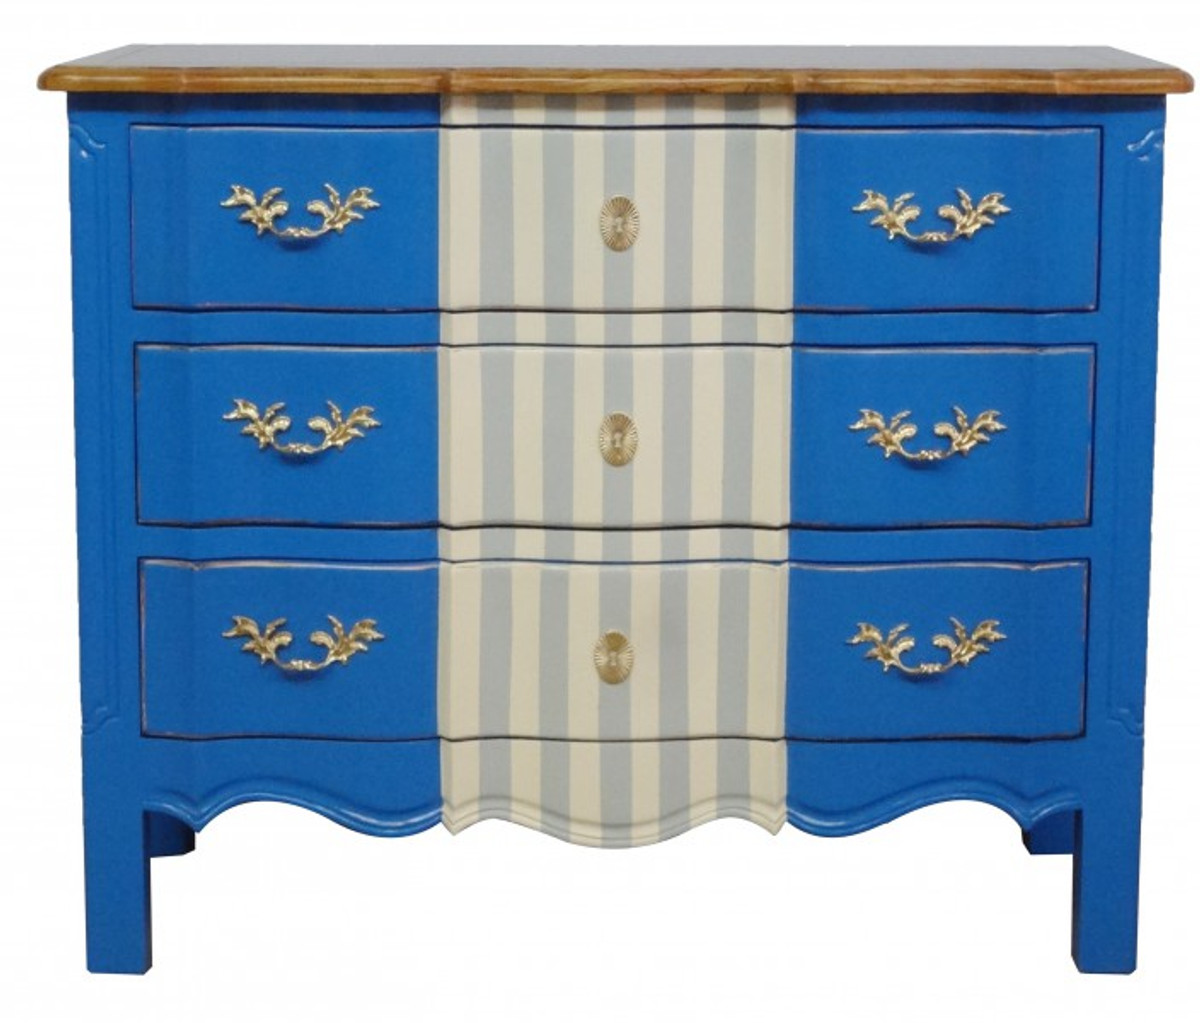 Casa padrino baroque chest of drawers blue white grey wood colors 105 cm casa padrino for Kommode blau